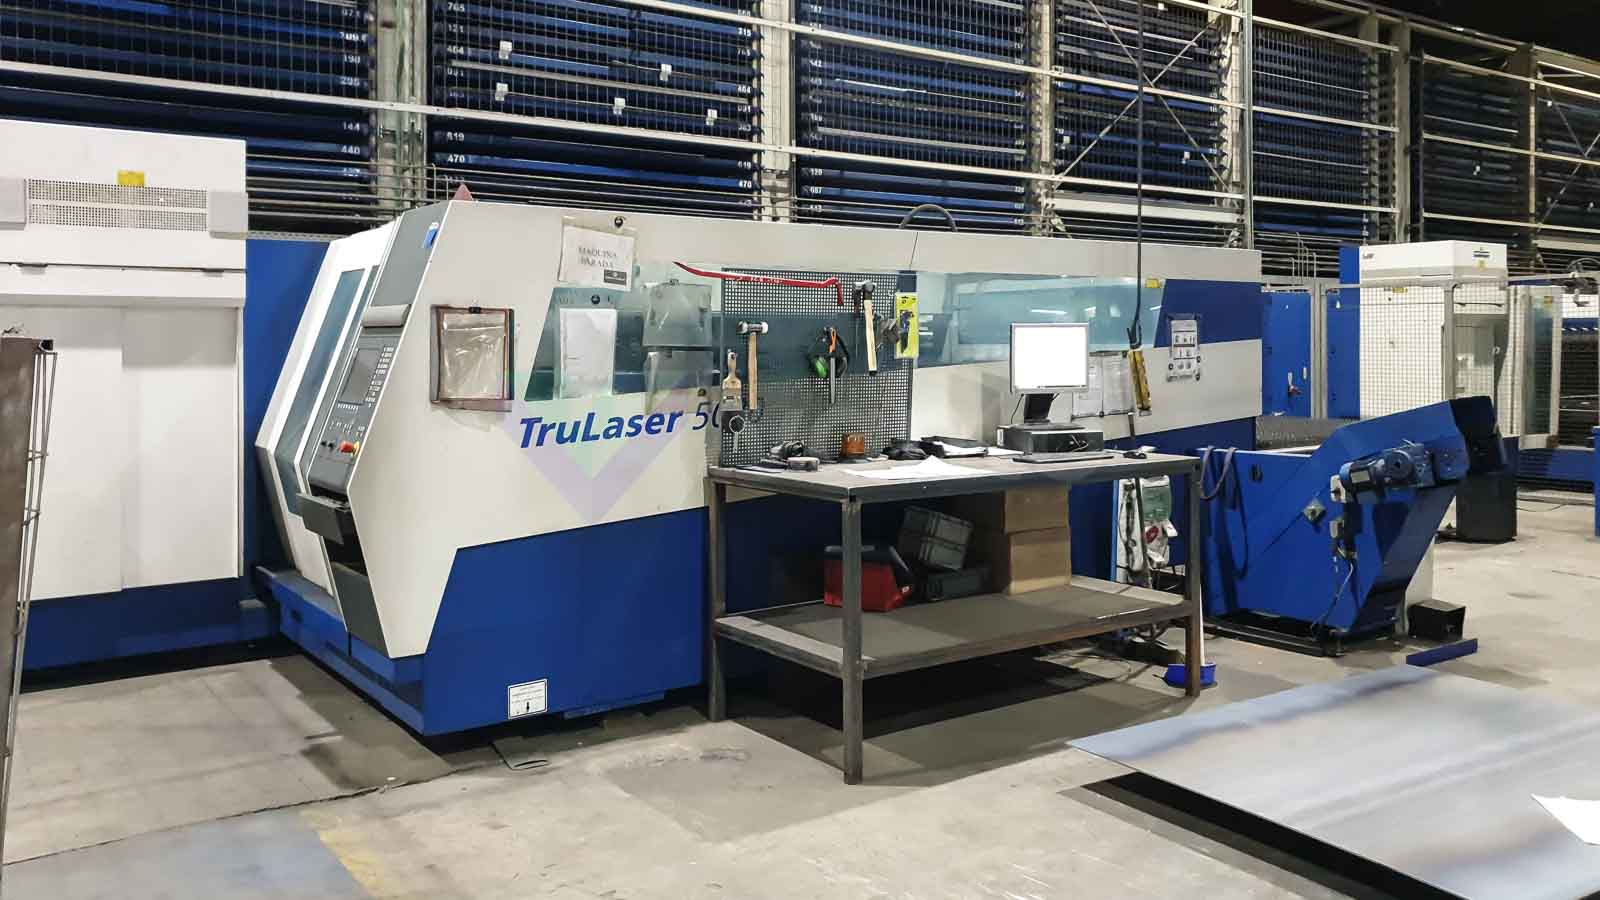 TRUMPF TruLaser 5030 Laser cutting machine (CO2) (2008) id10545